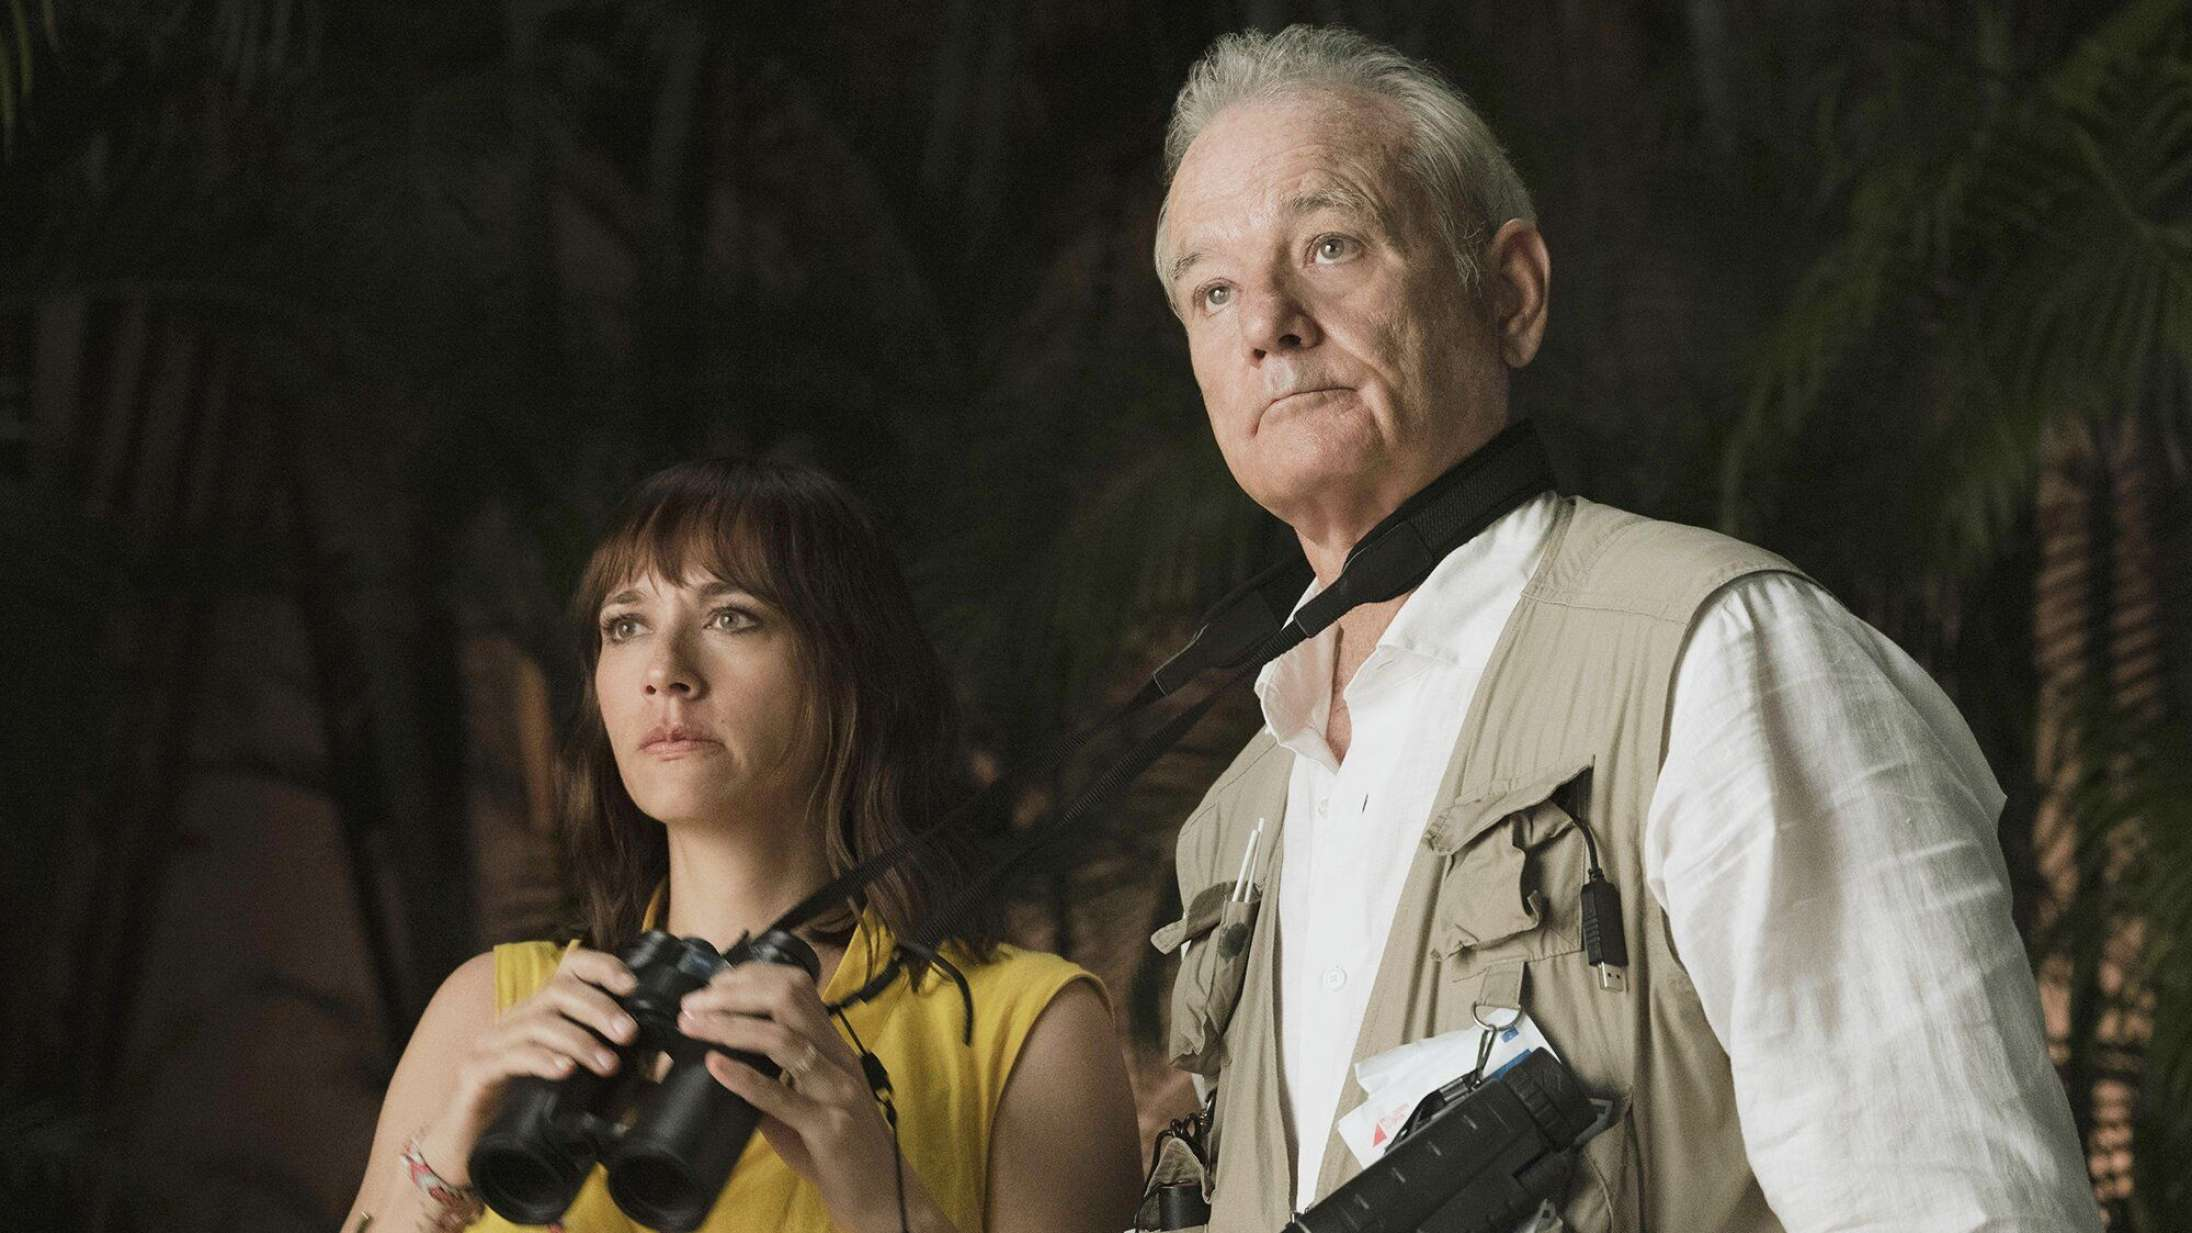 'On the Rocks': Rashida Jones og Bill Murray er i hopla i personlig Sofia Coppola-film